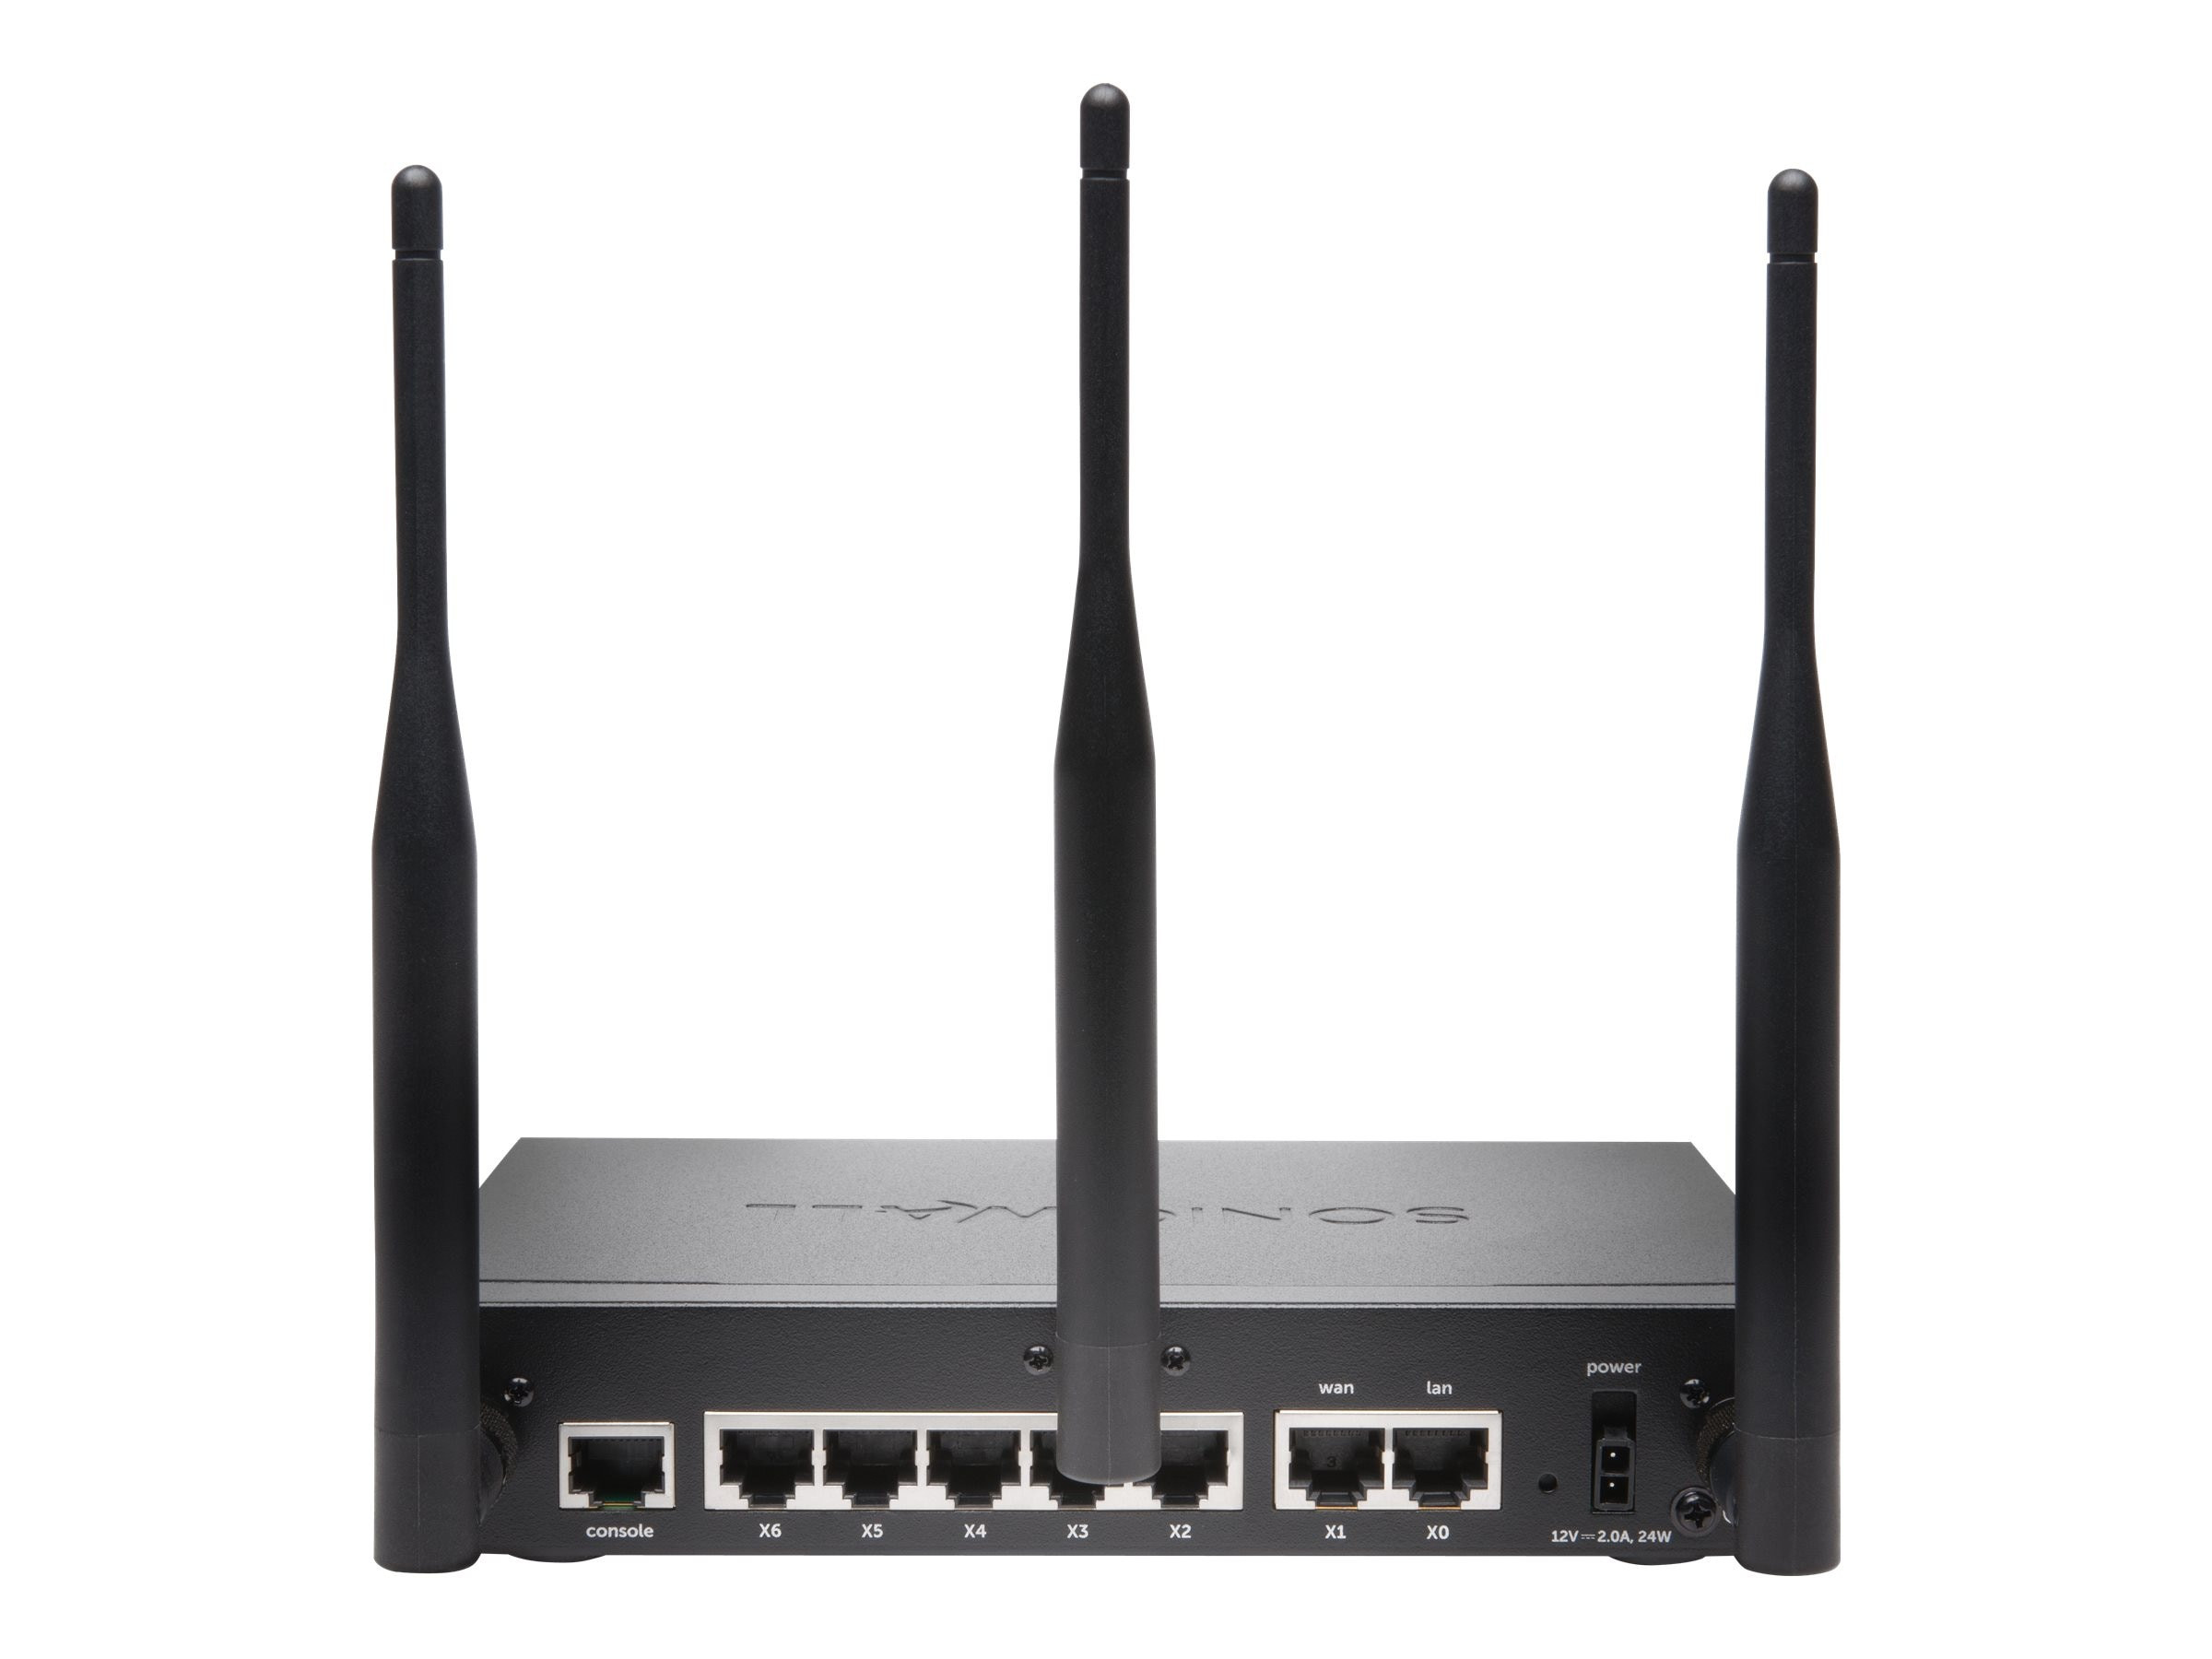 SonicWALL 01-SSC-0516 Image 4